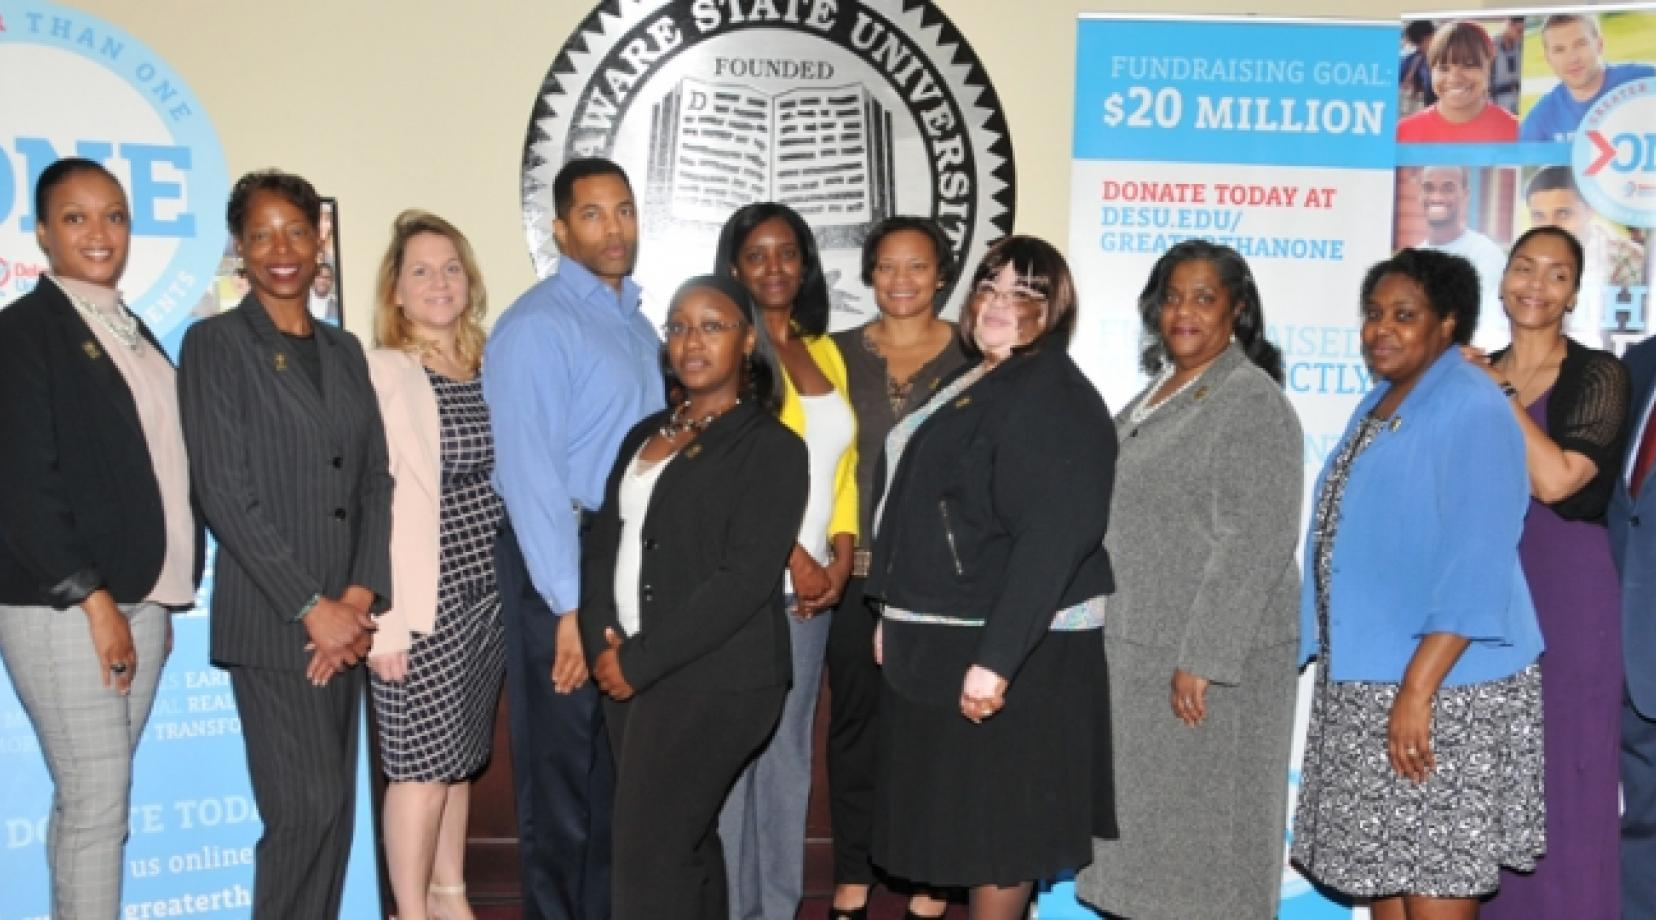 DSU, Greater Than One, Fundraising